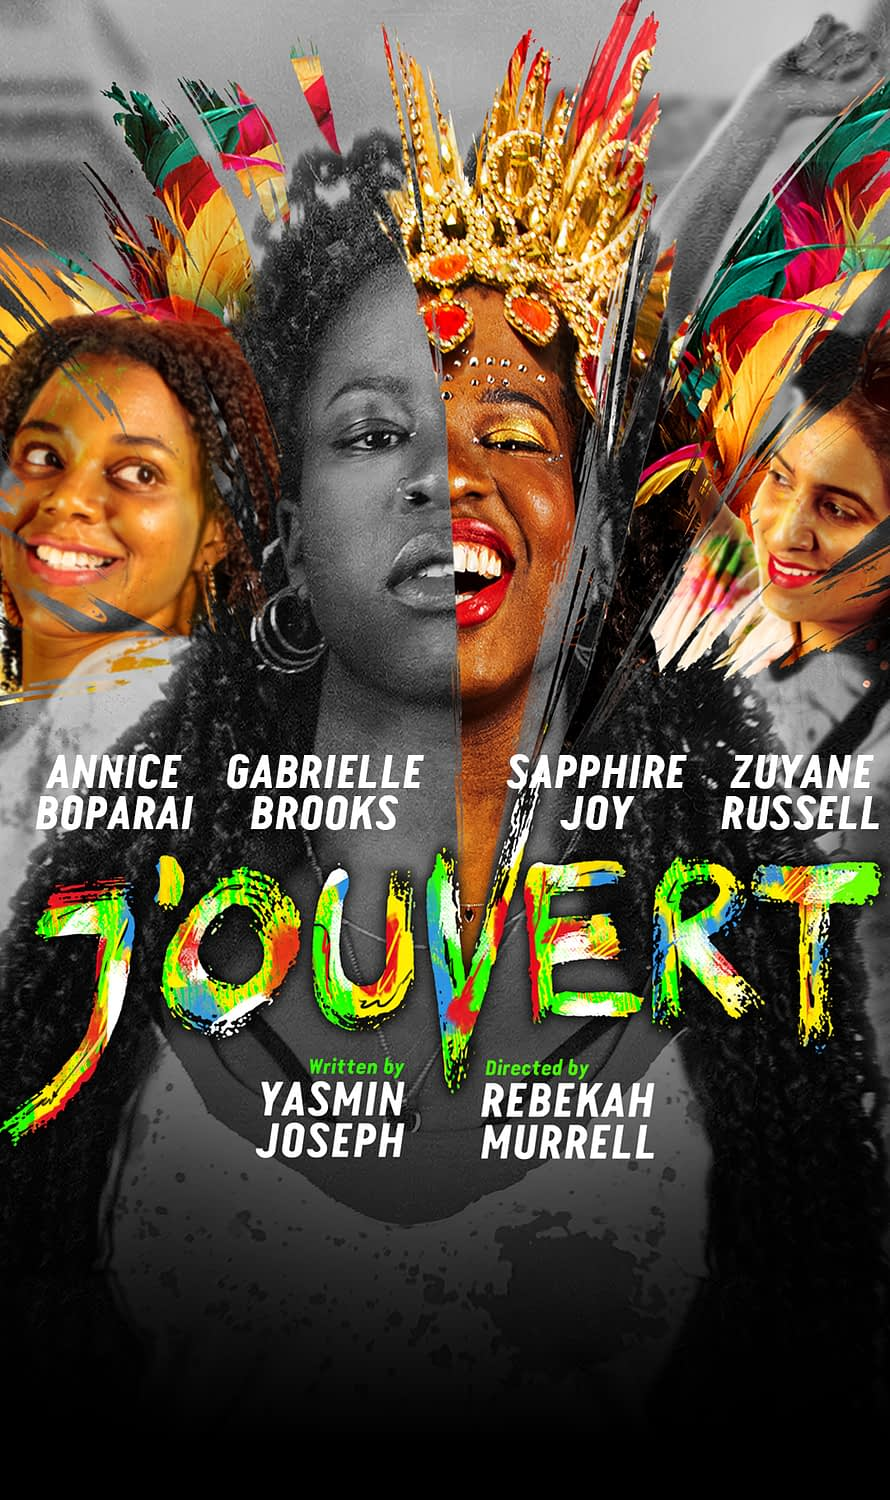 J'OUVERT play banner